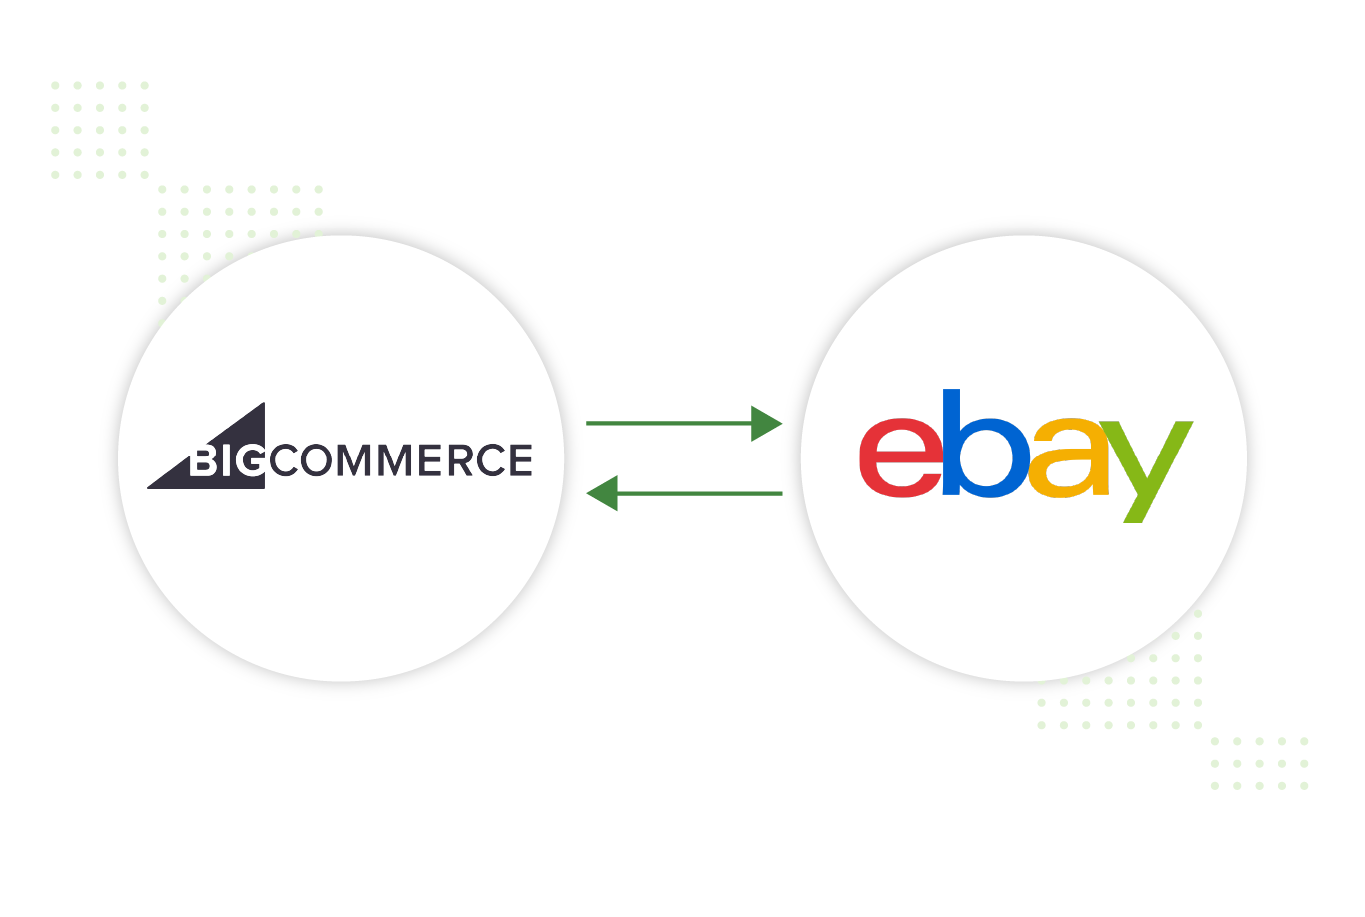 bigcommerce to ebay